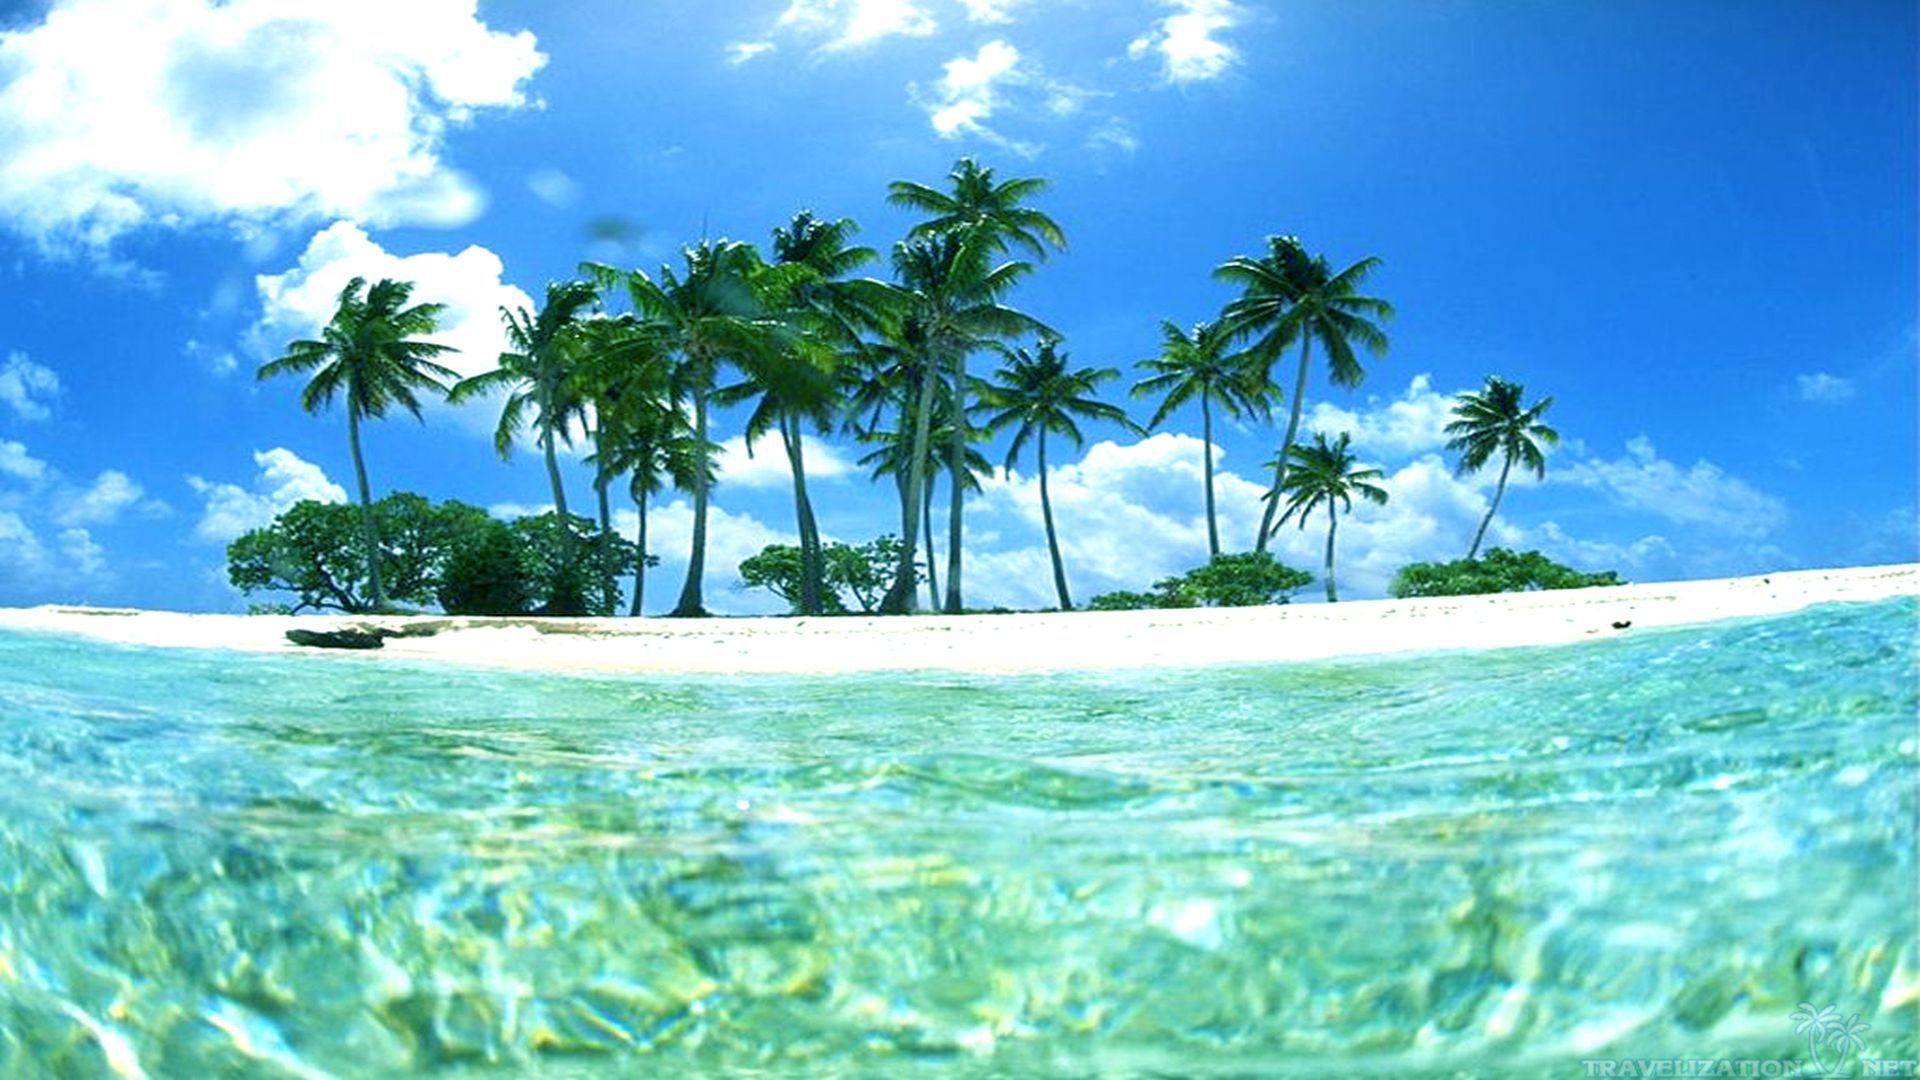 Beautiful Tropical Islands Desktop Wallpaper 1920x1080